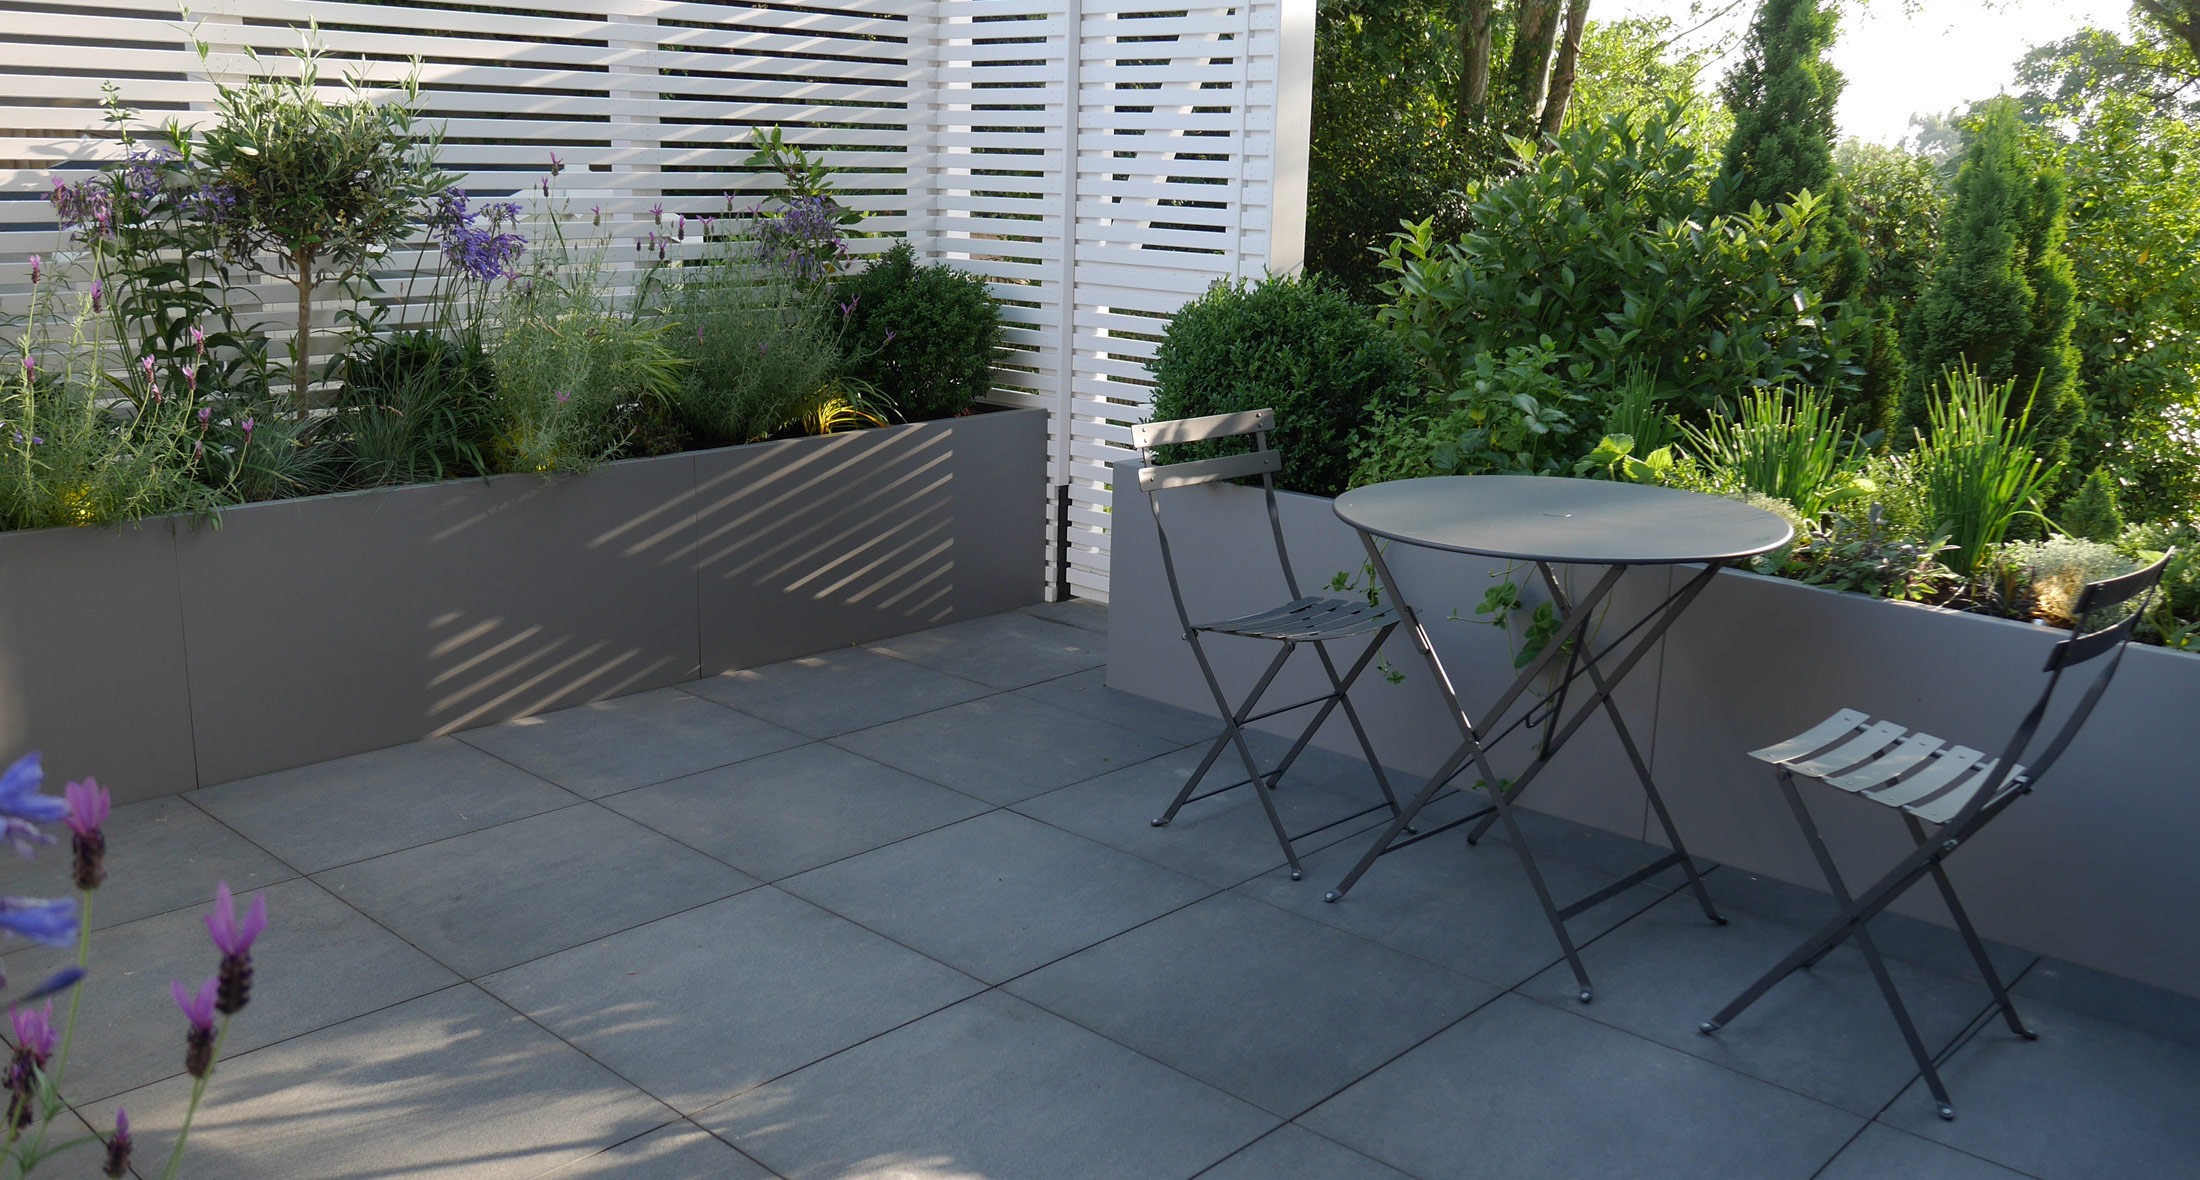 Slate Grey Garden Design roof top container planting, screening and patio area in Tunbridge Wells, Kent